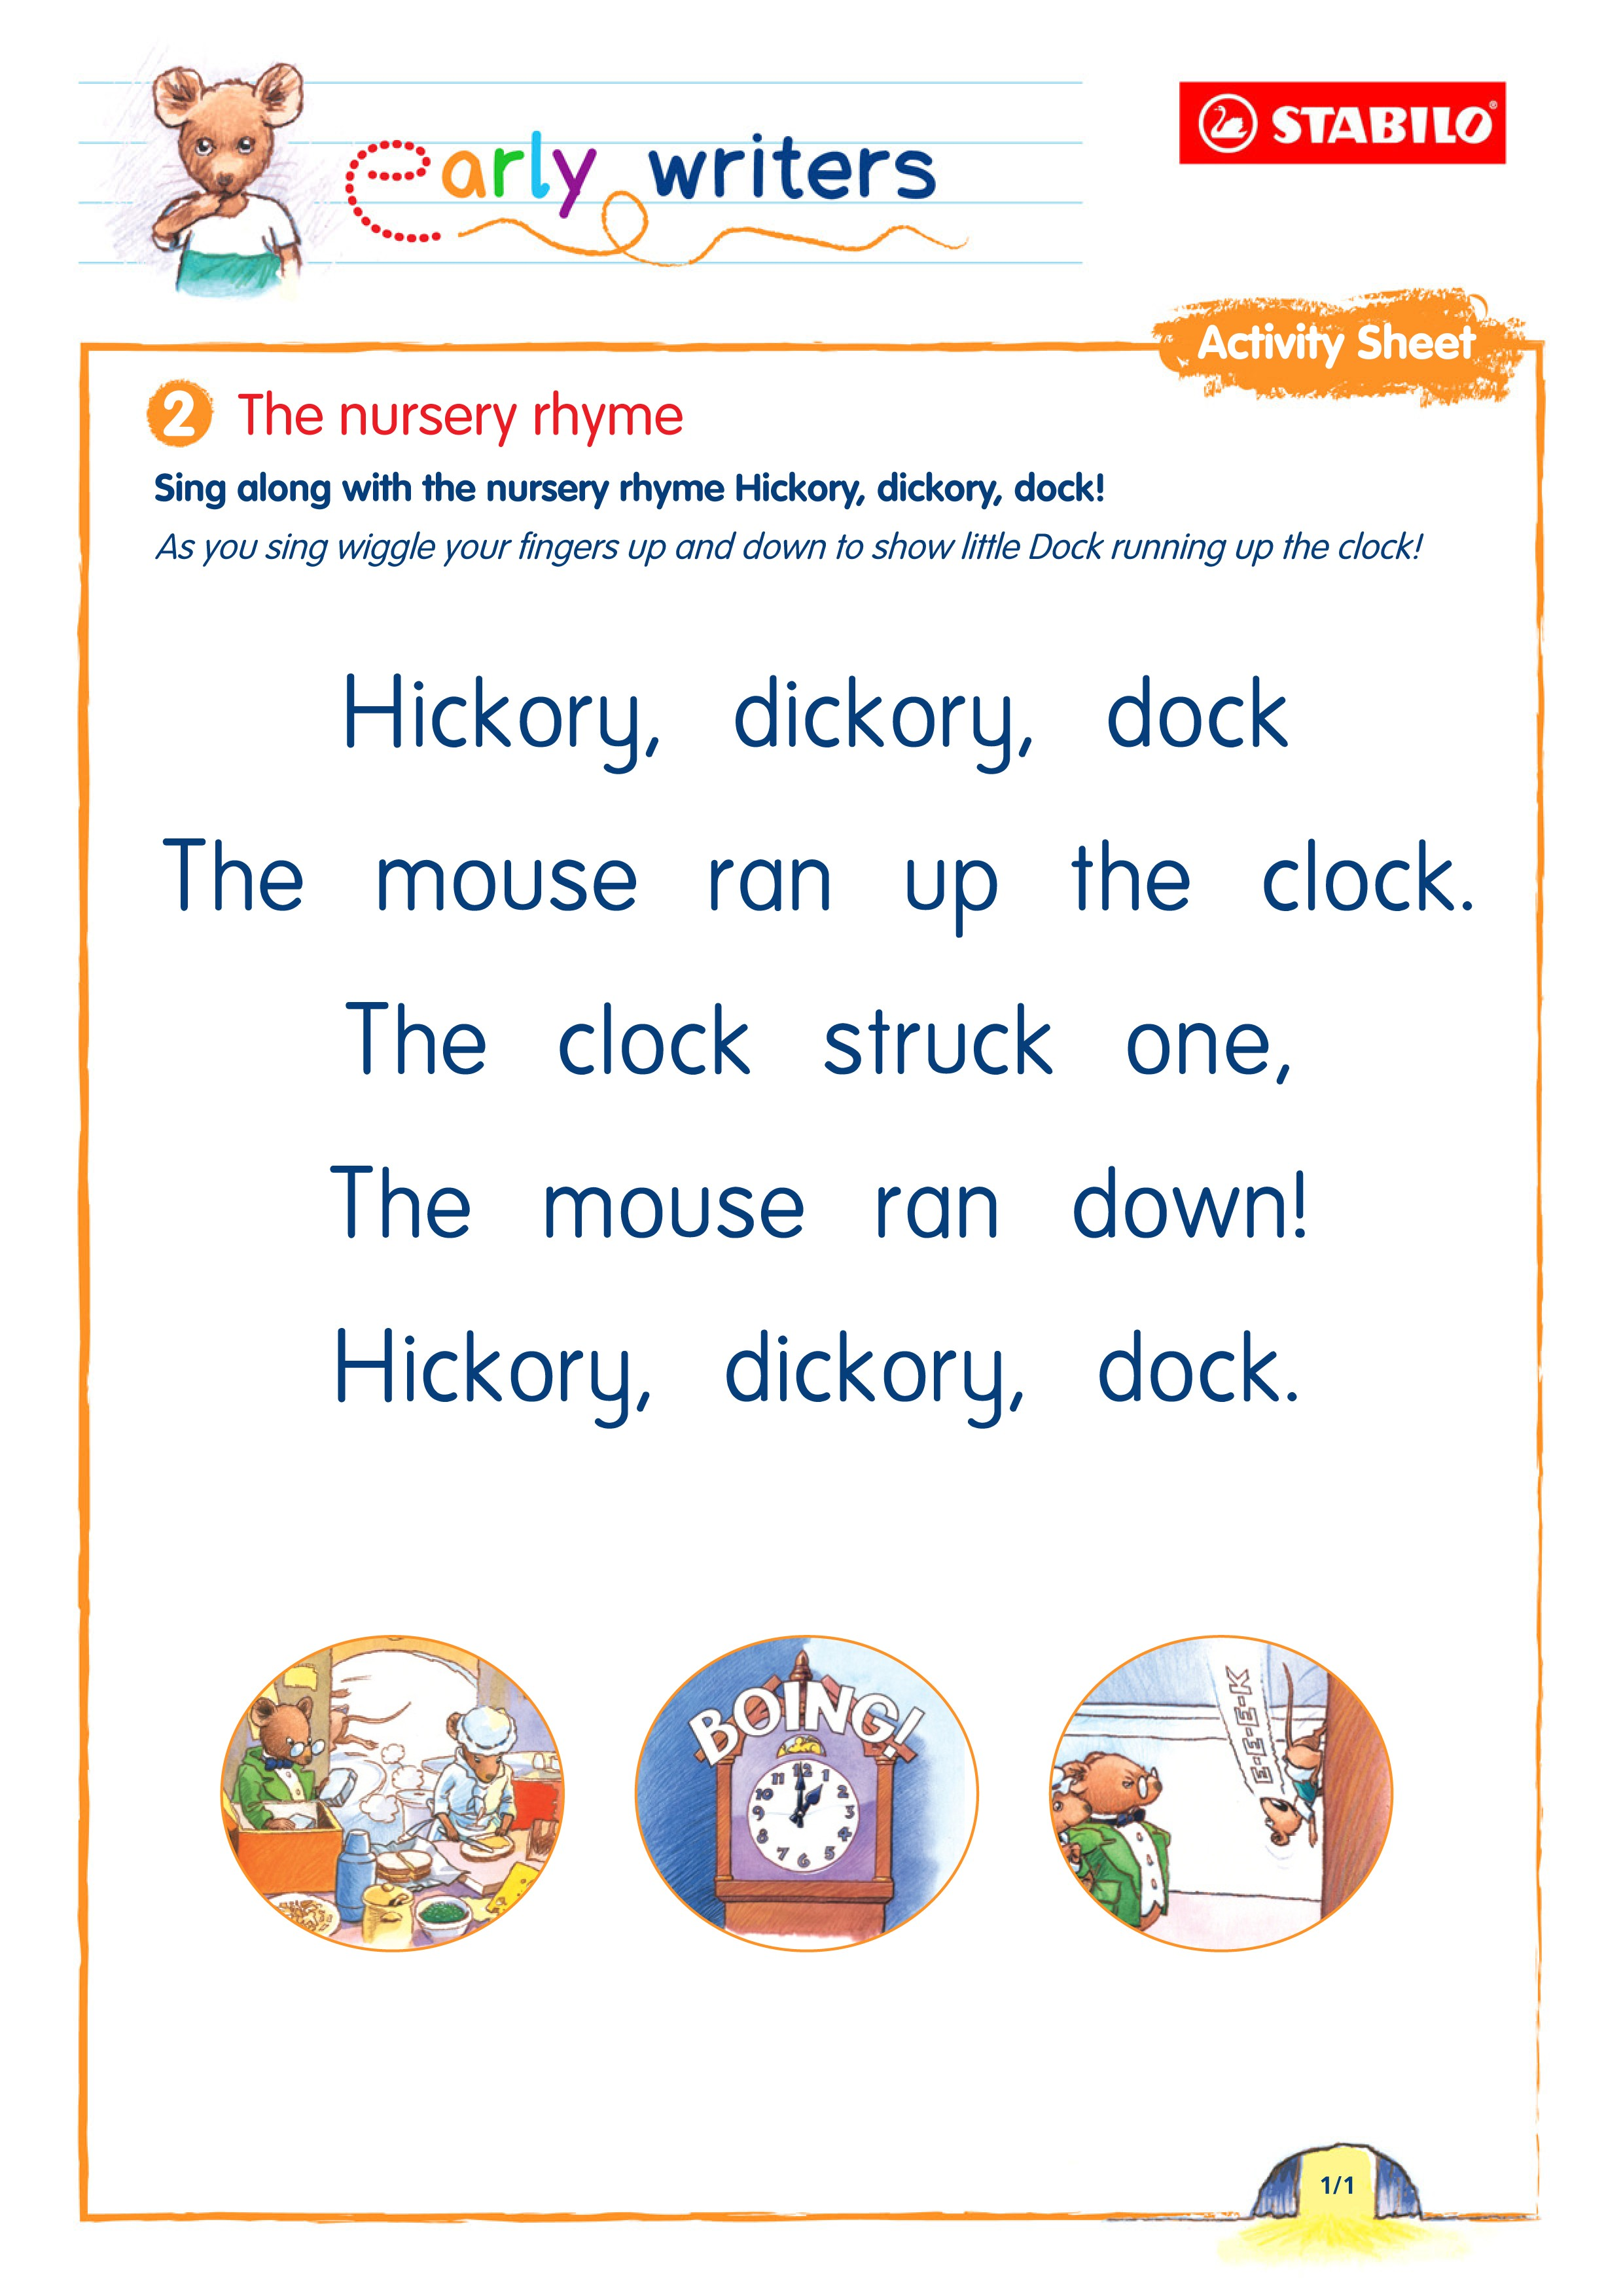 free-early-writing-activity-sheets-to-print-out_50491